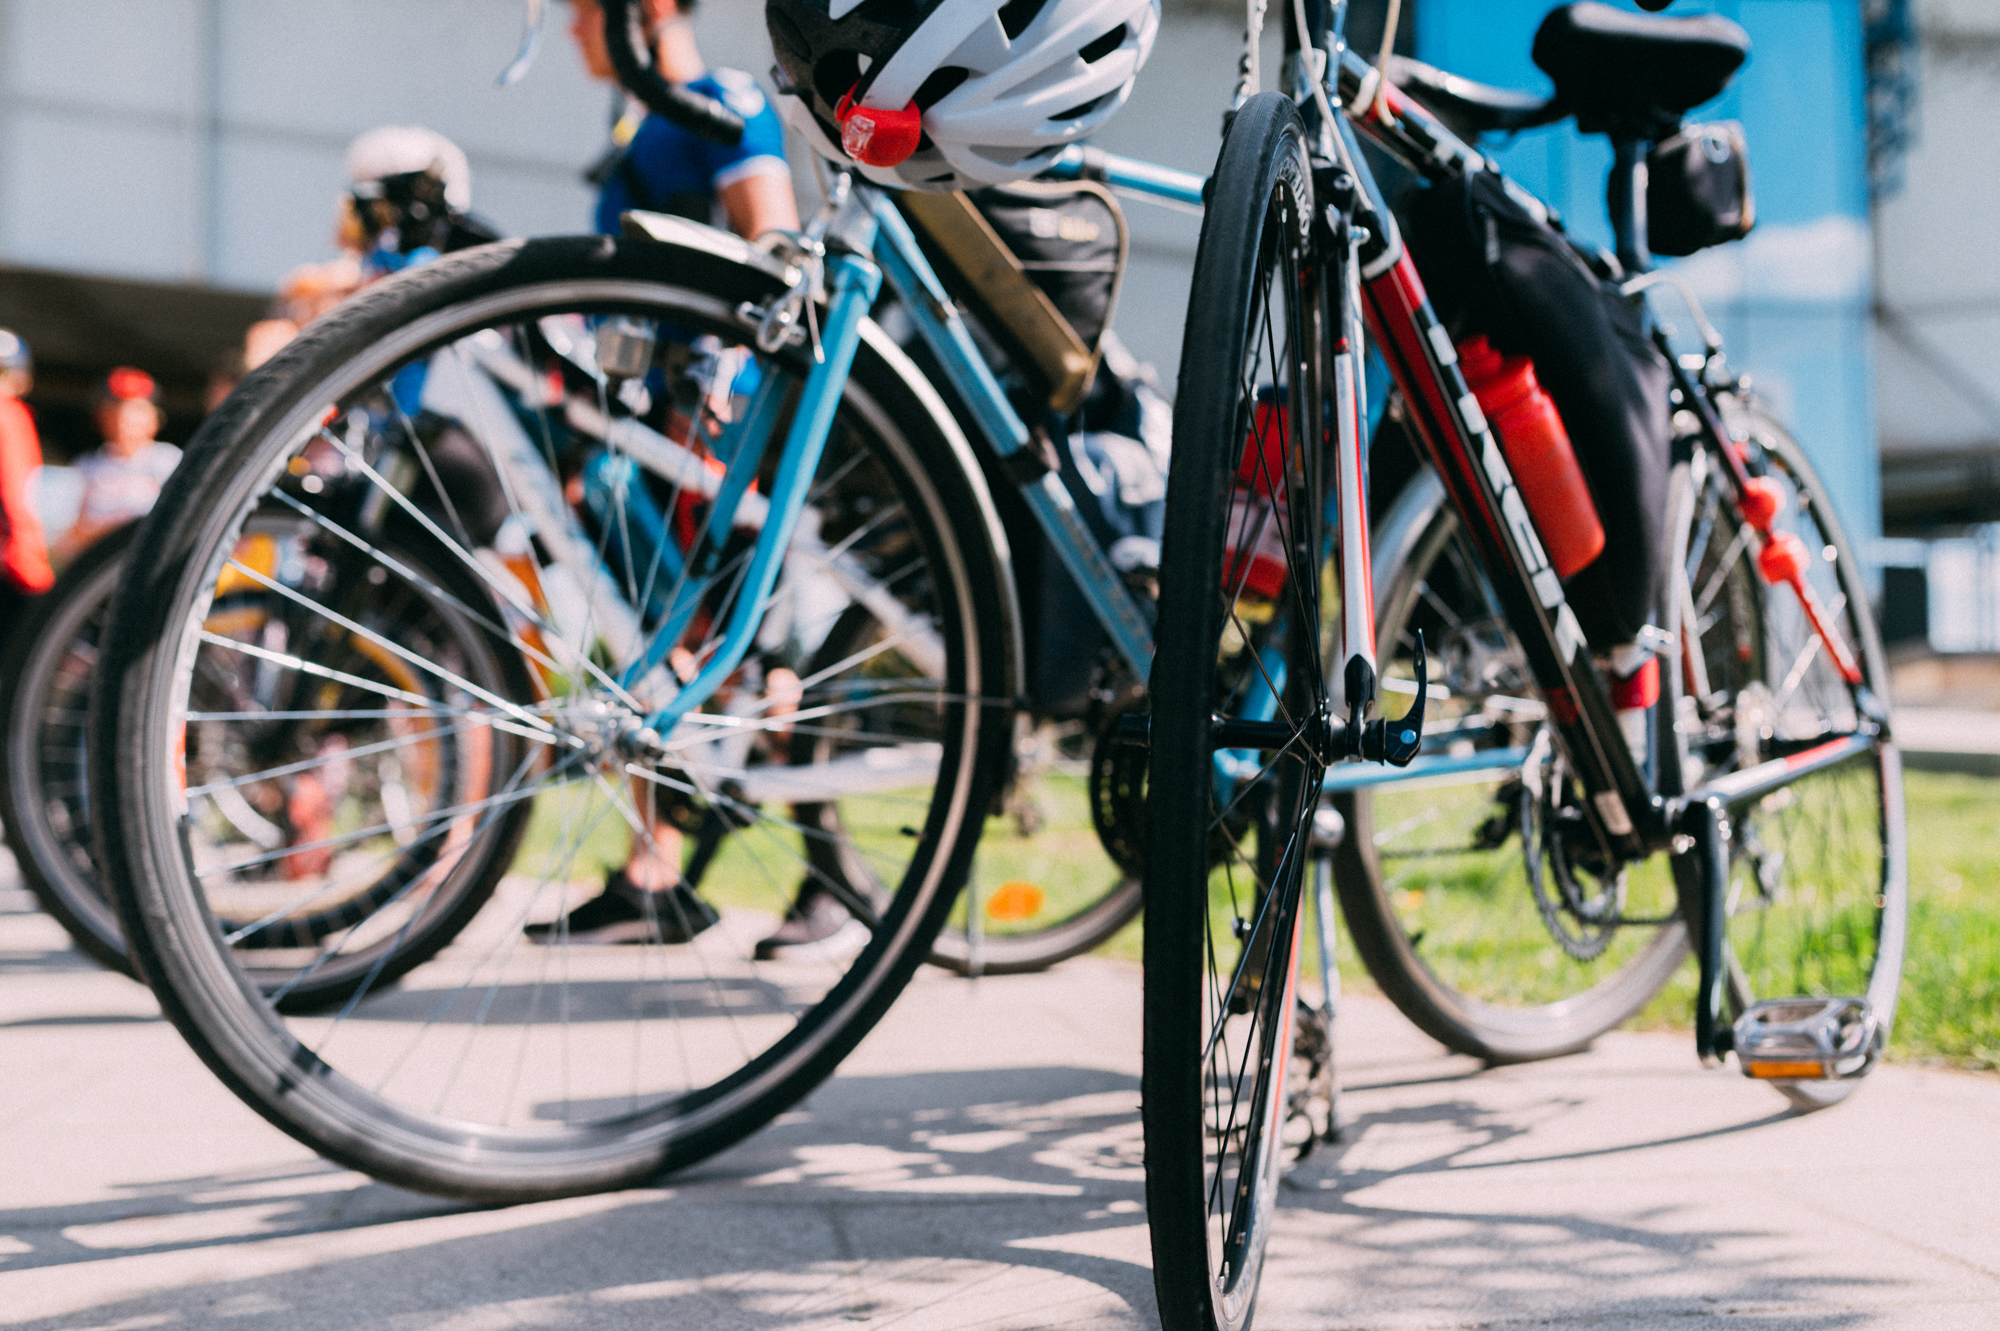 World Bicycle Day - Cycling for Sustainable Cities in Serbia